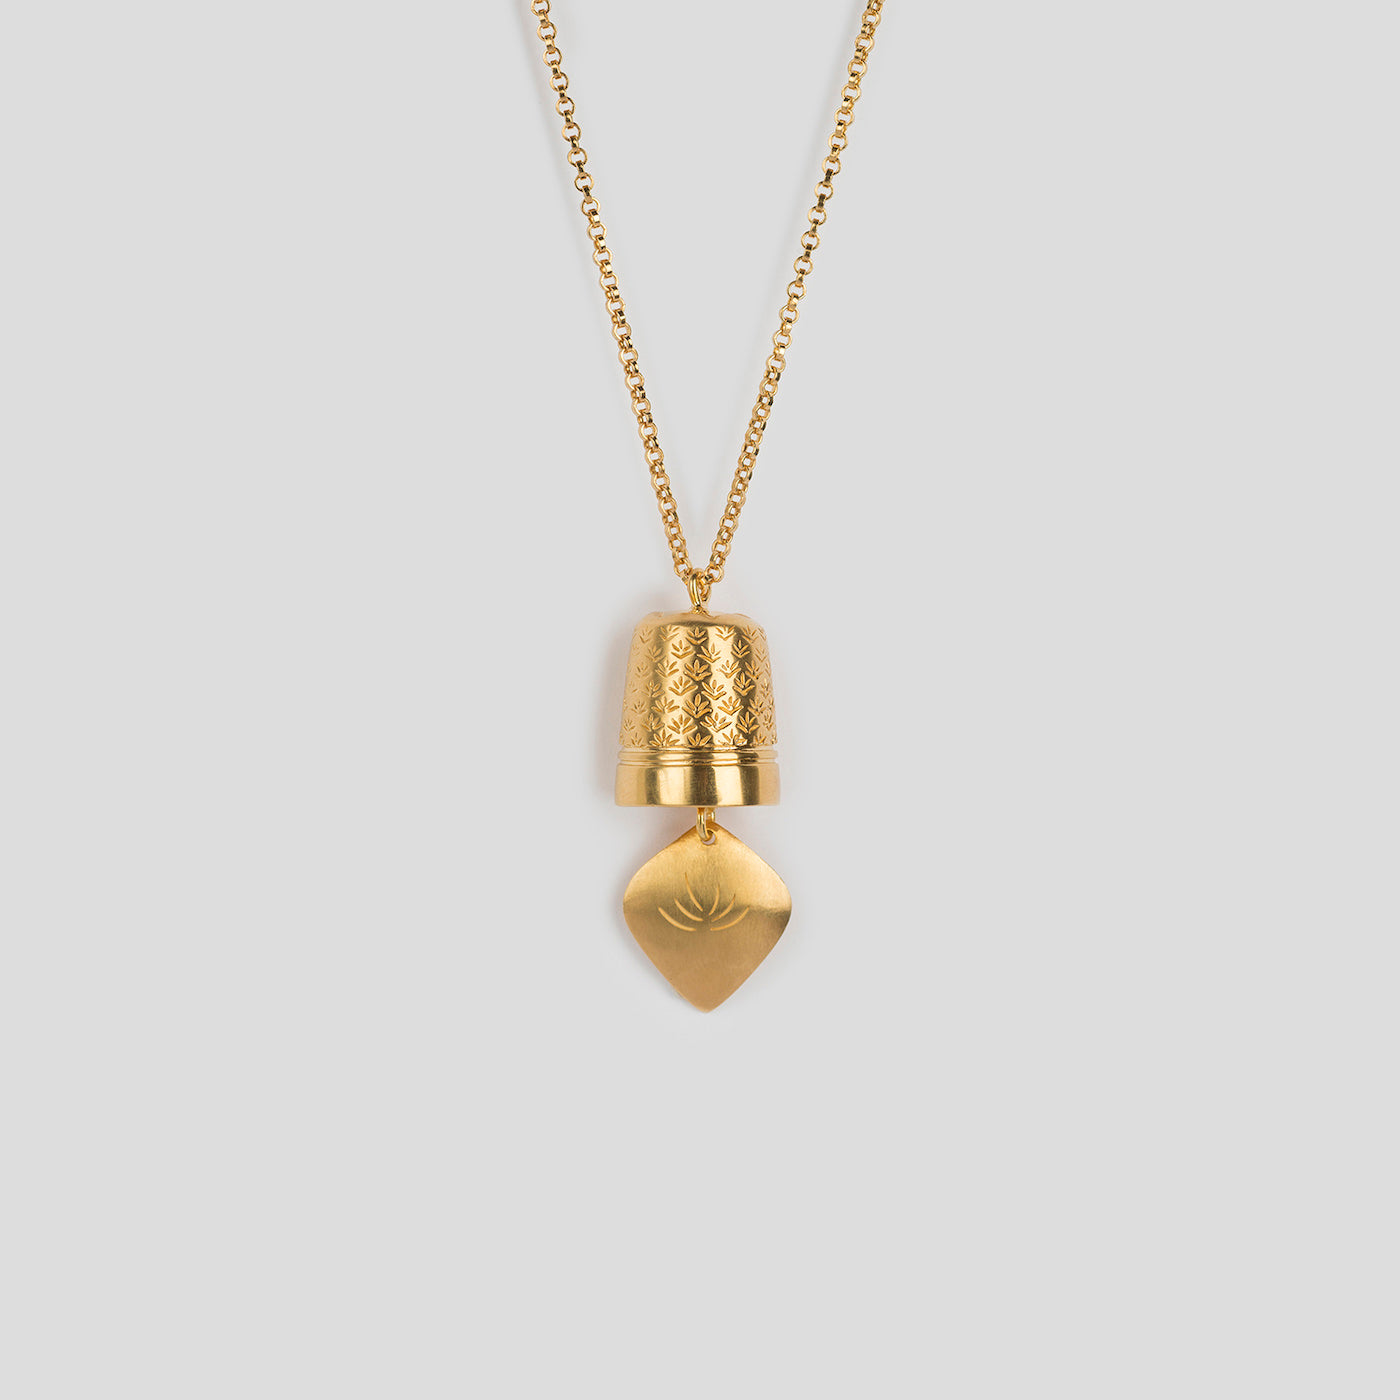 close up of gold precious bell pendant on white background